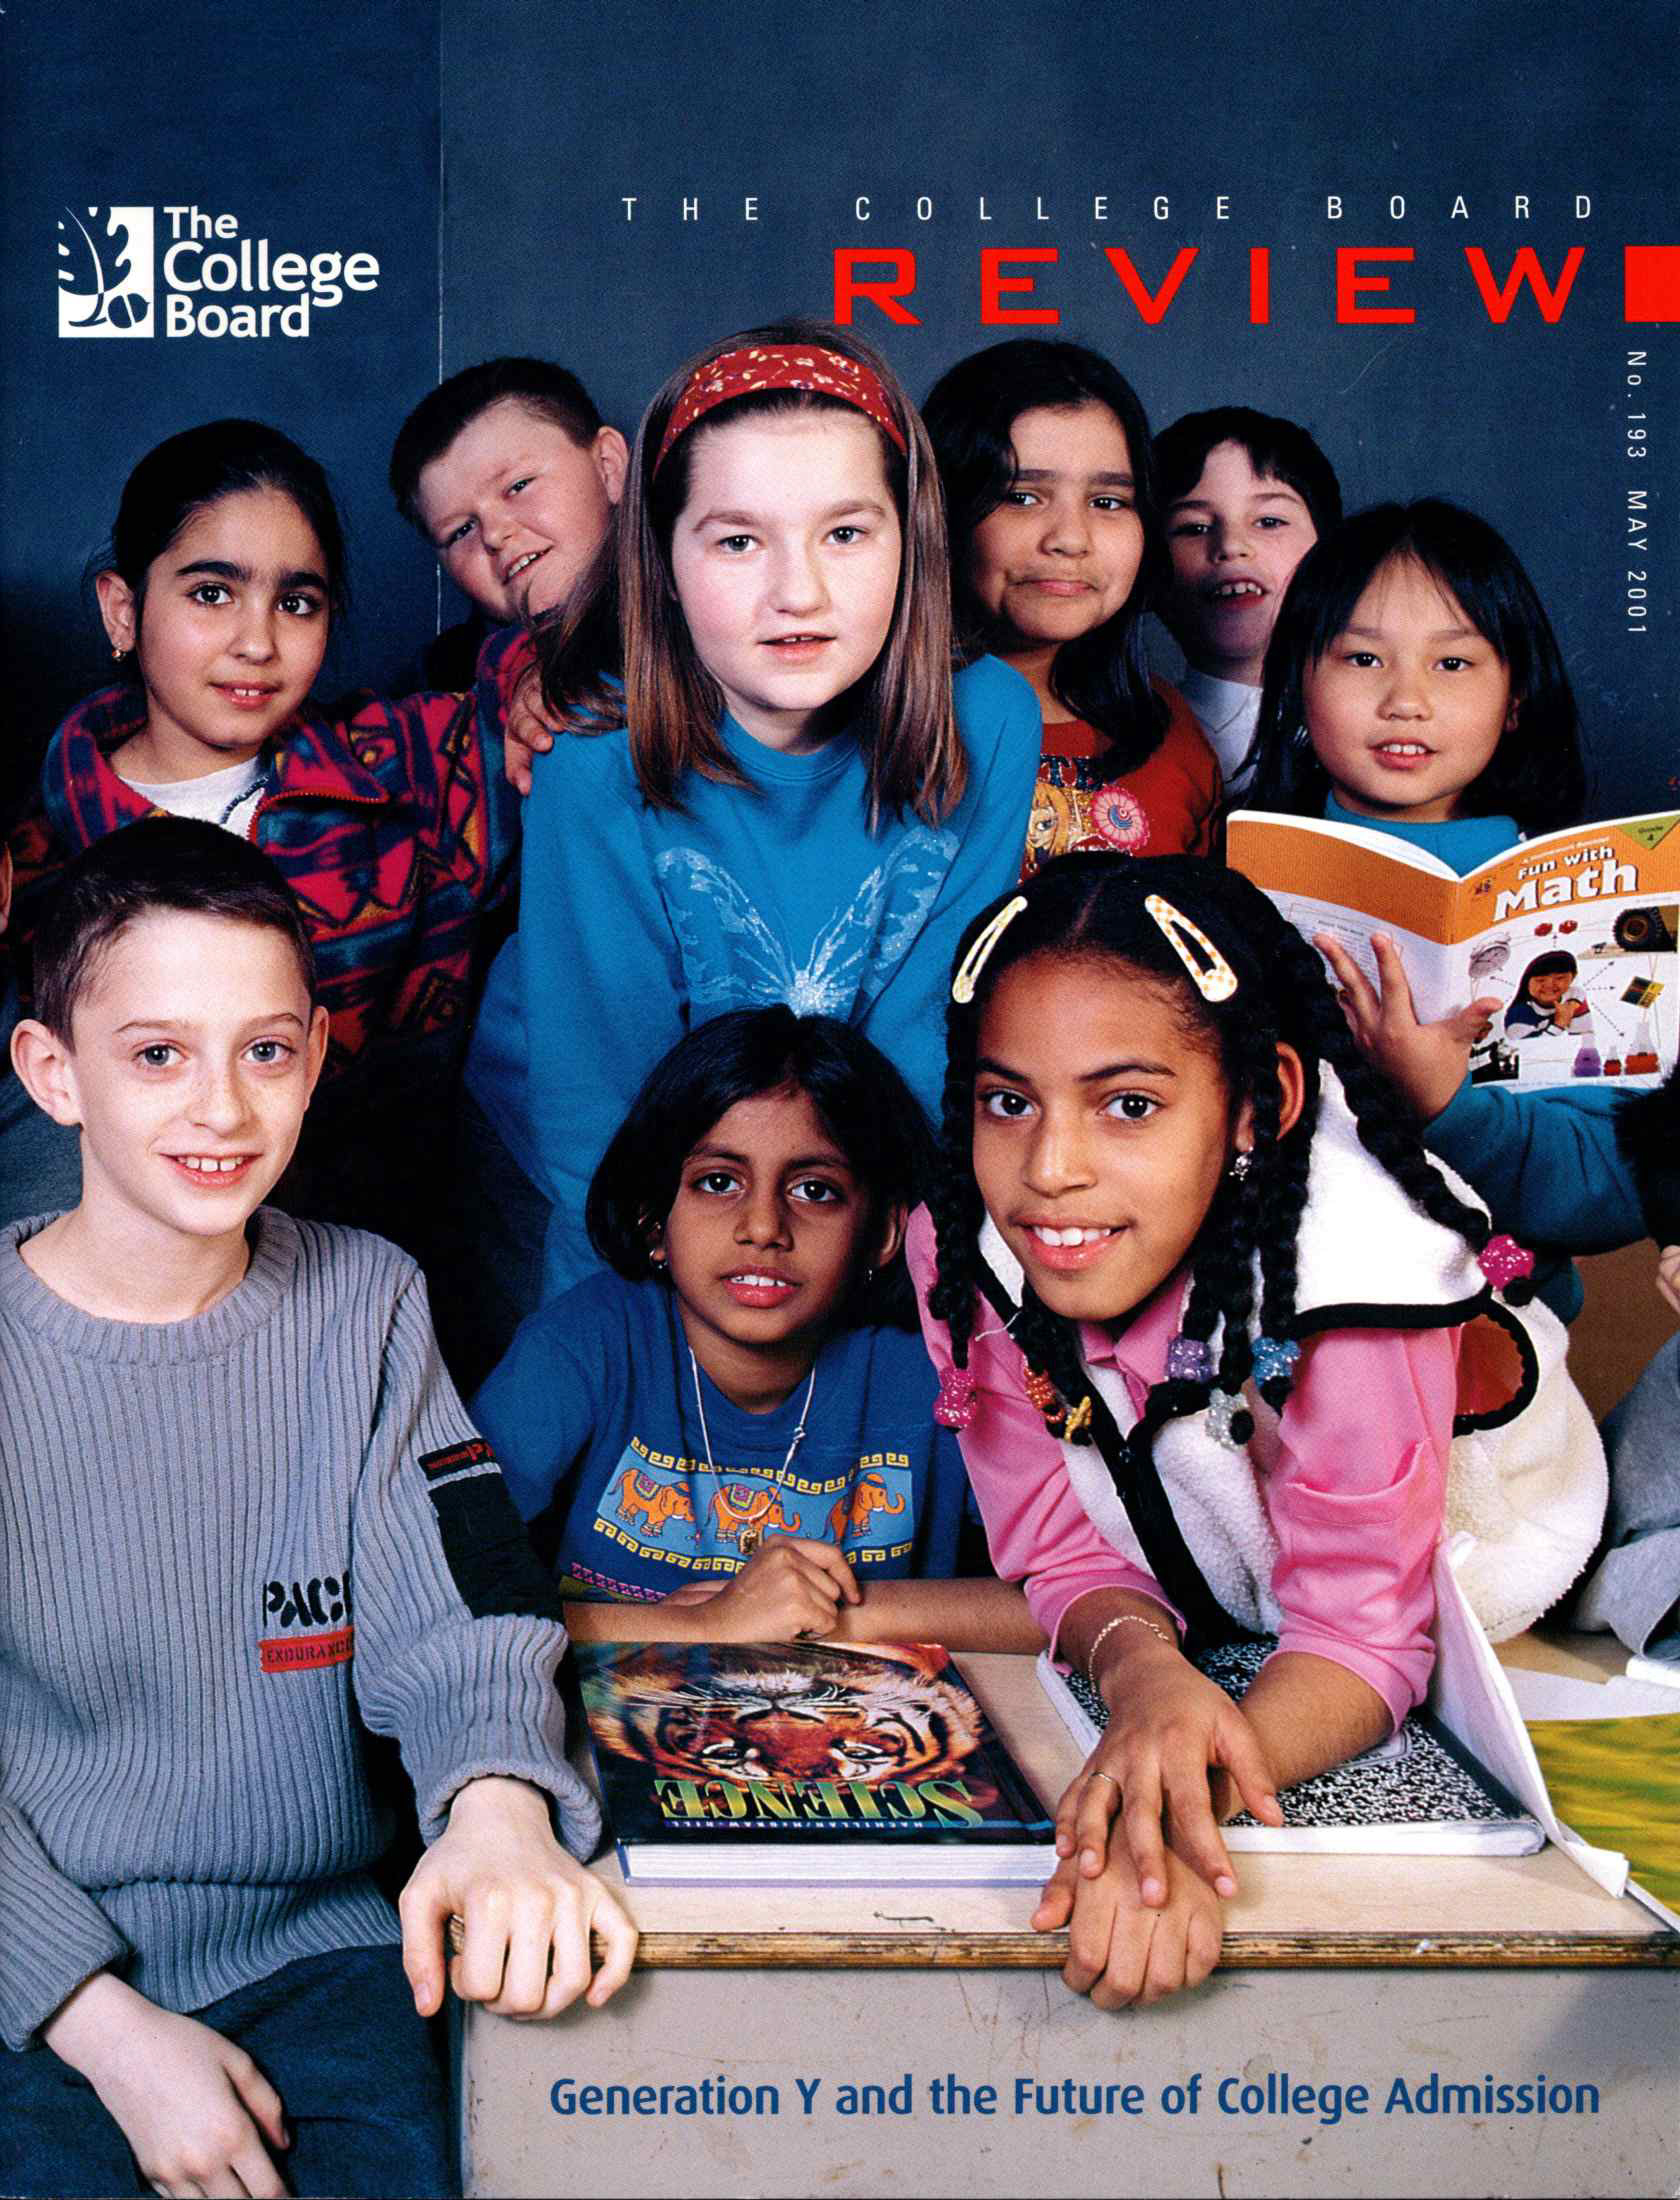 the cover of the may 2001 issue of the college board review featuring a group of male and female elementary school students